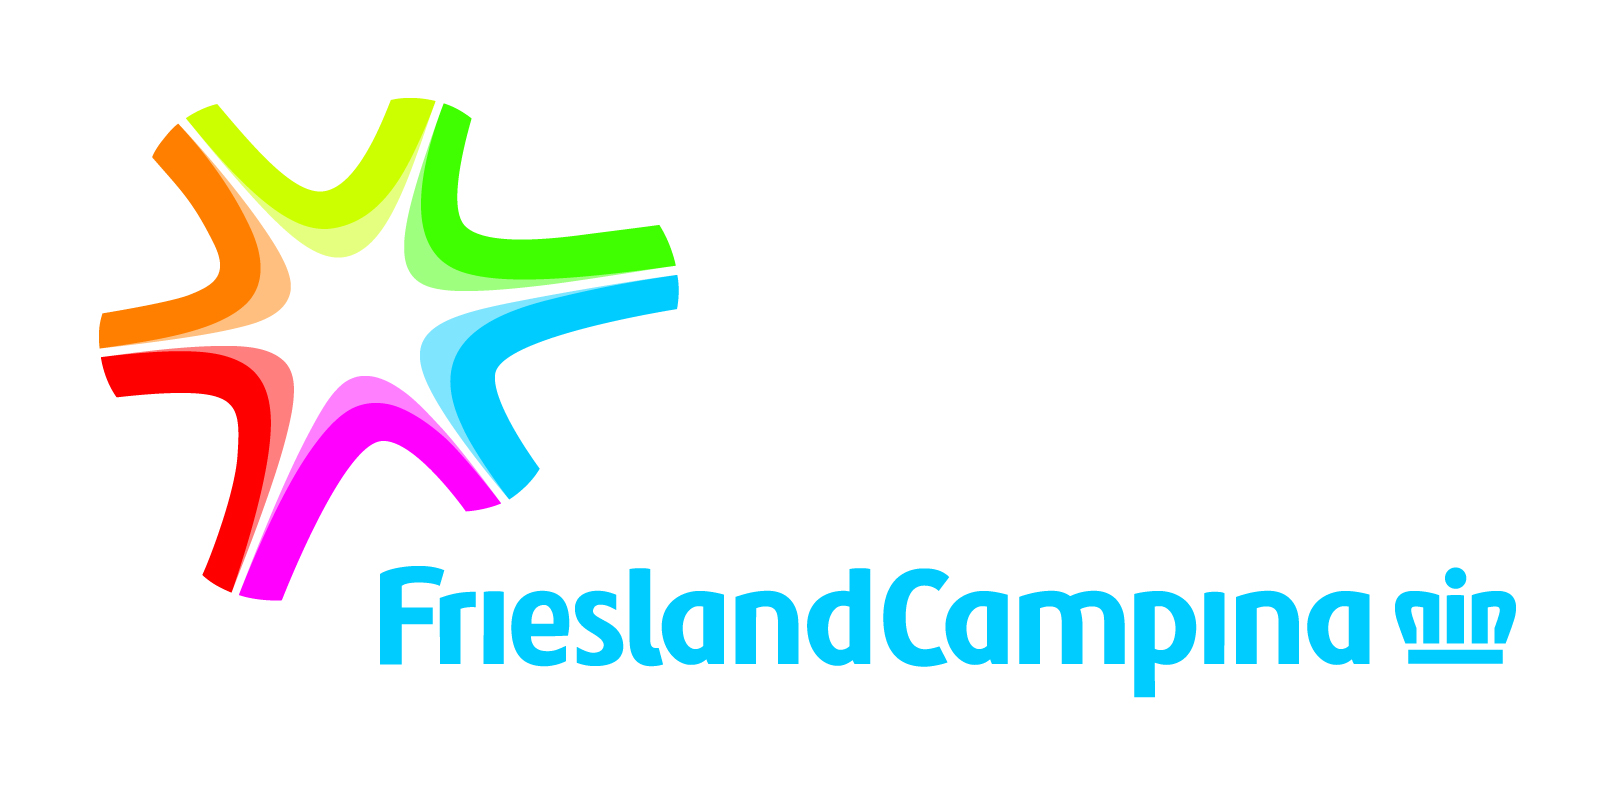 Royal FrieslandCampina - Corporate Key Account Manager